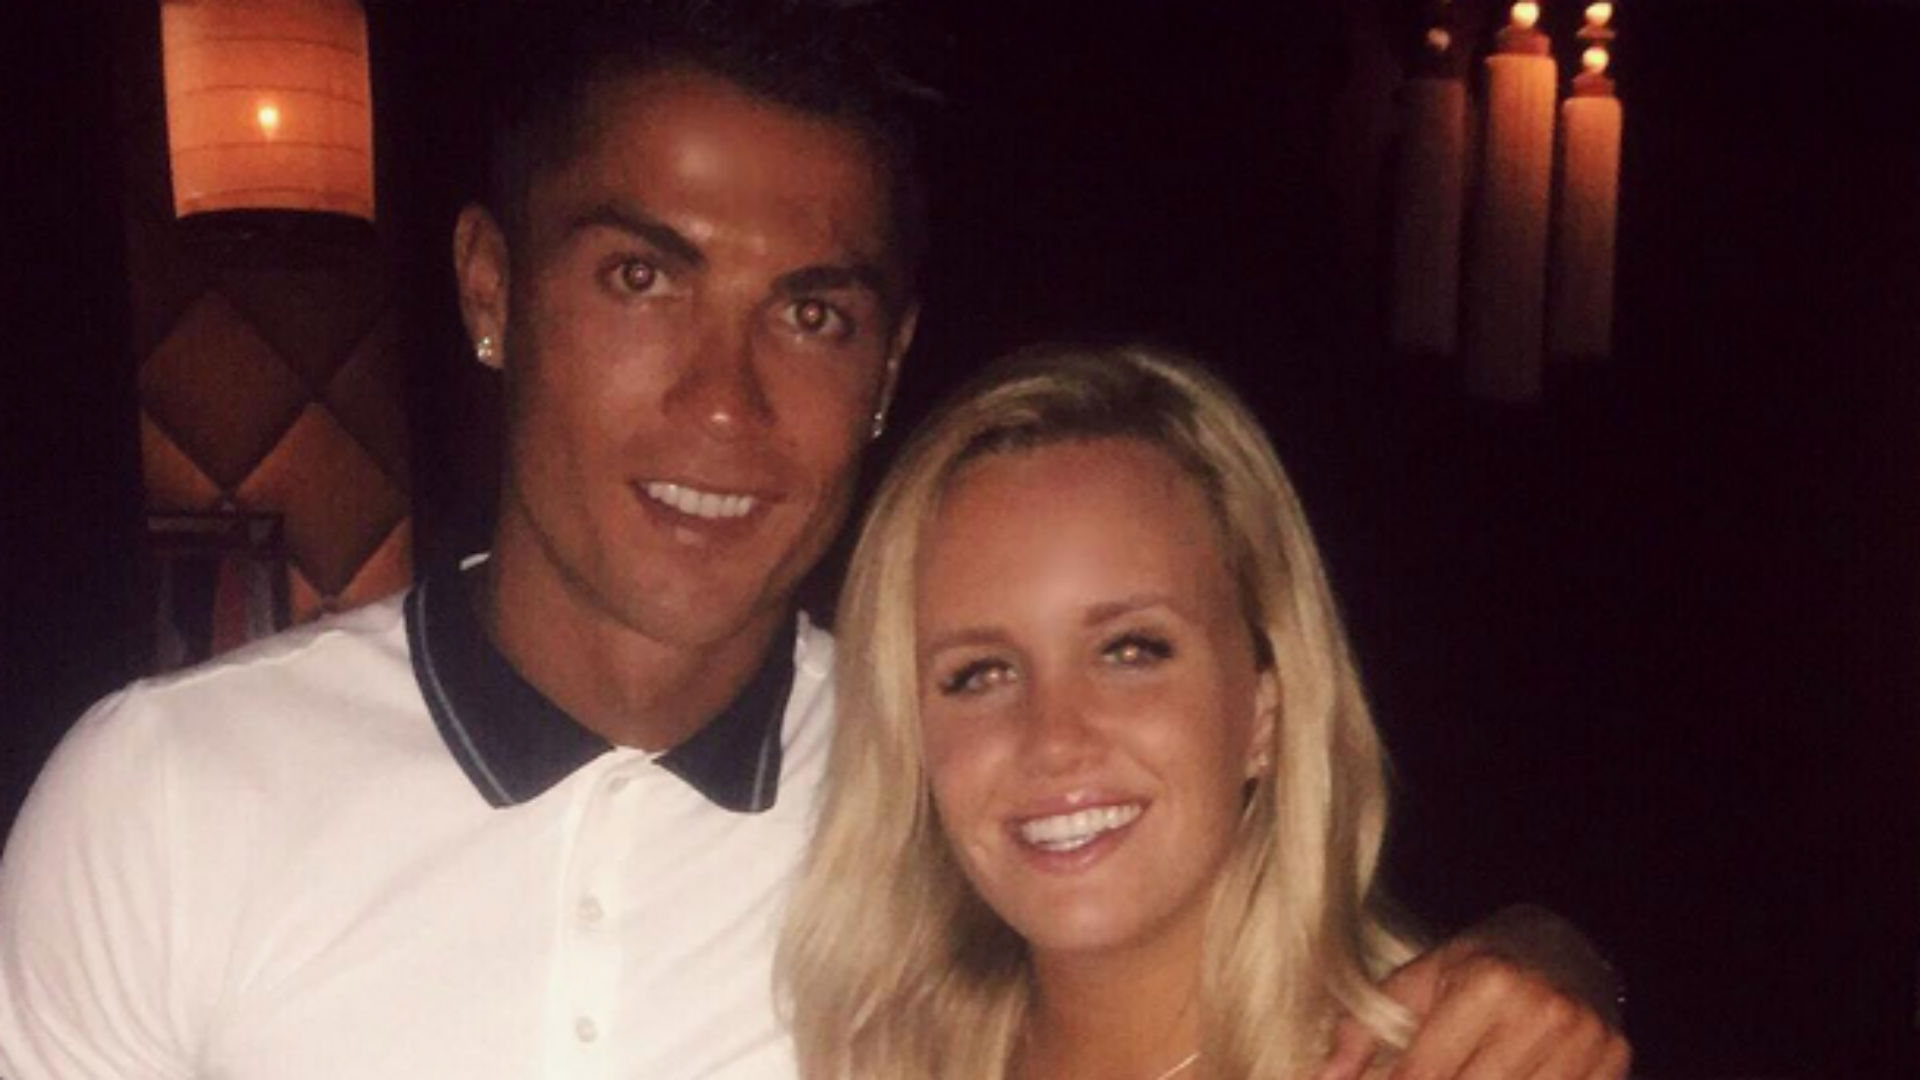 Cristiano Ronaldo treats group of girls to dinner after finding lost phone